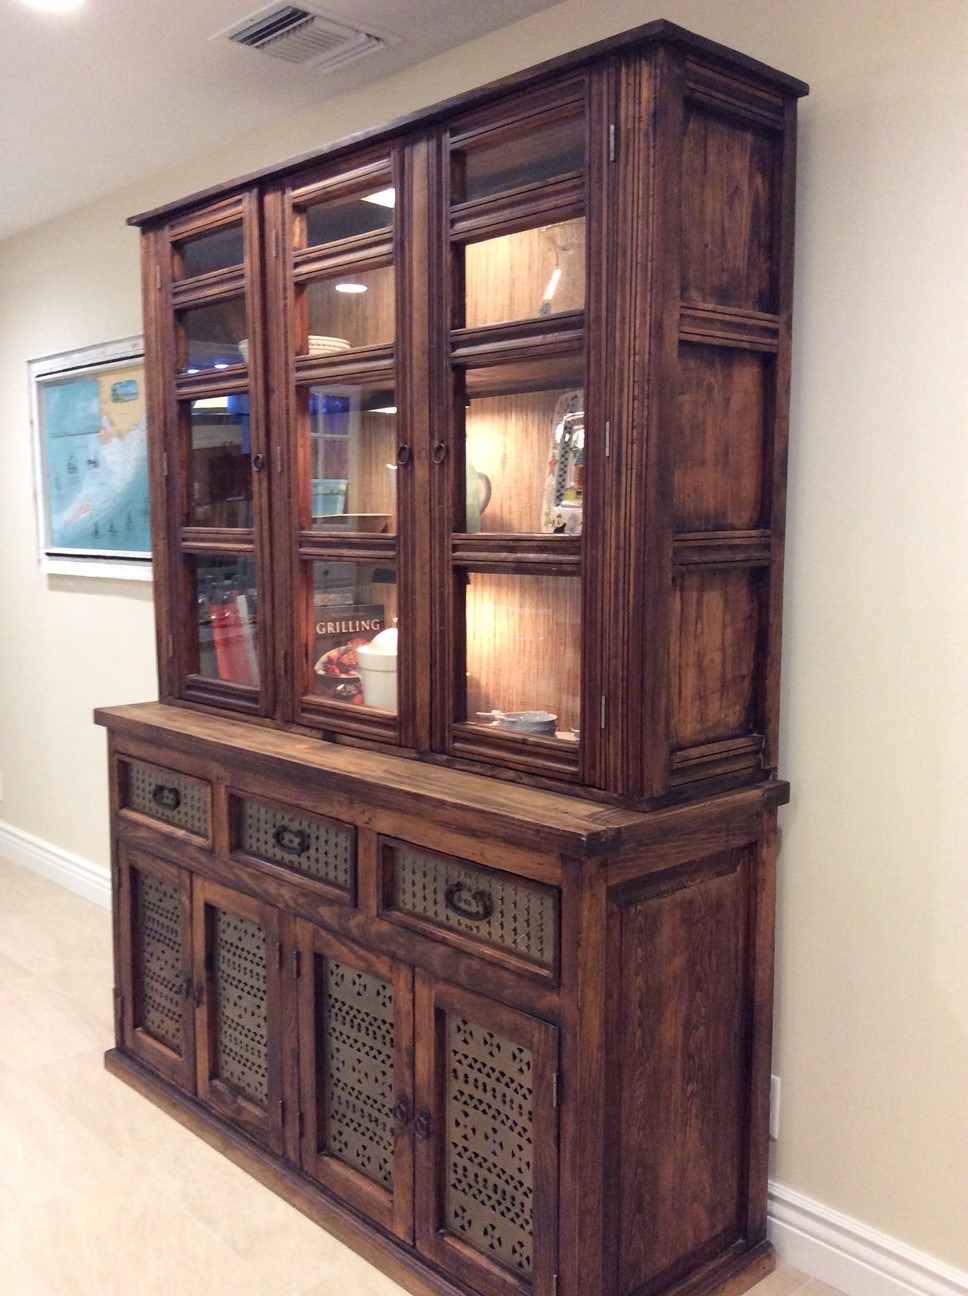 large kitchen hutch in dark solid wood